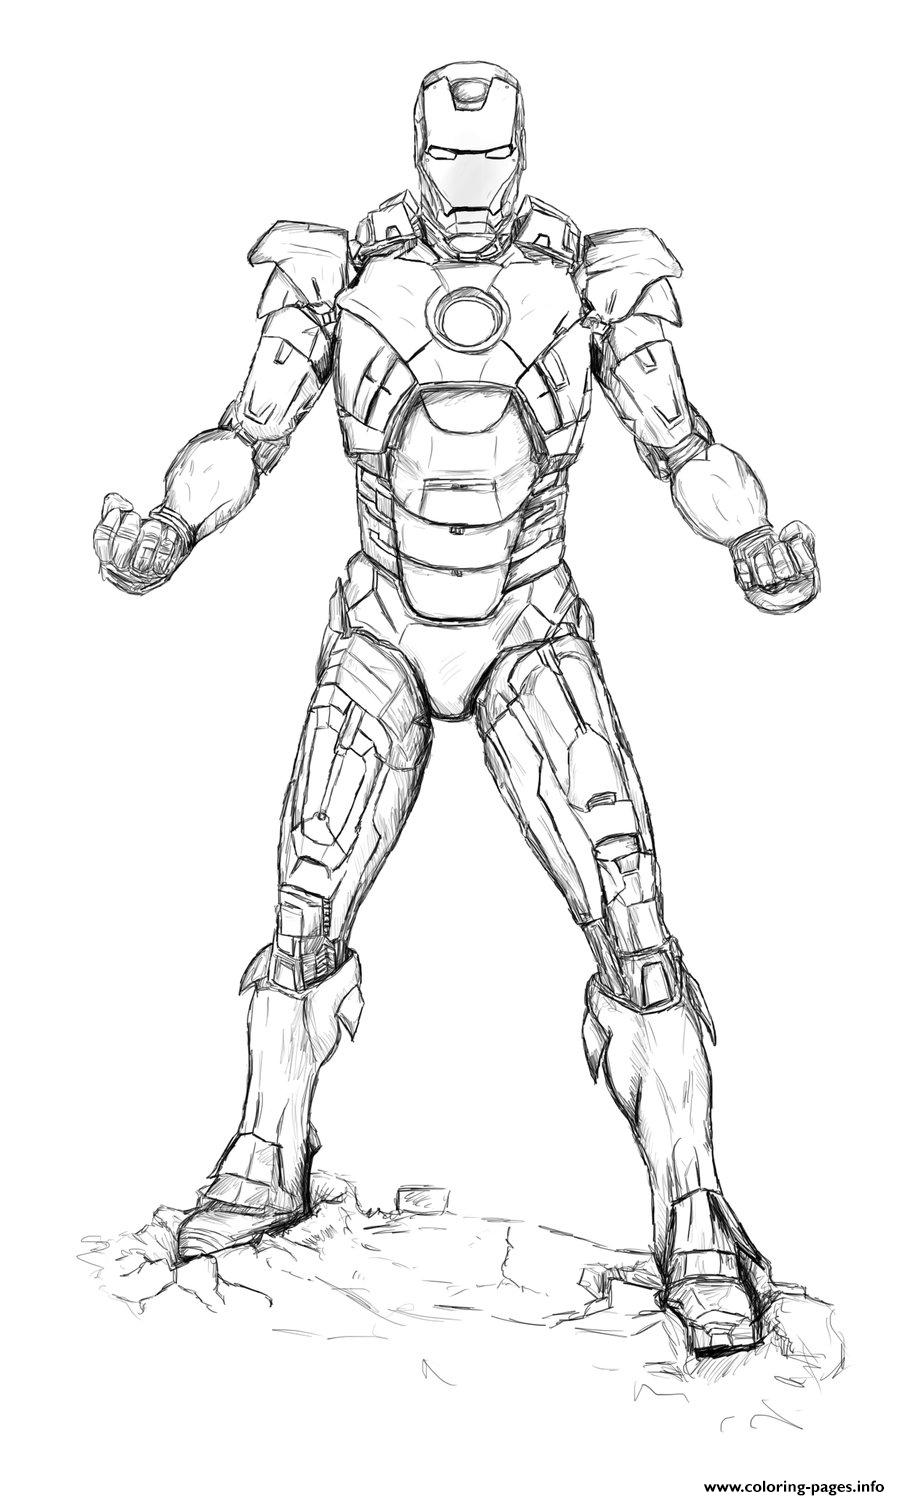 Adult Beauty Iron Man Printable Coloring Pages Gallery Images top iron man mark 6 coloring pages weapons and sheets to print131f gallery images